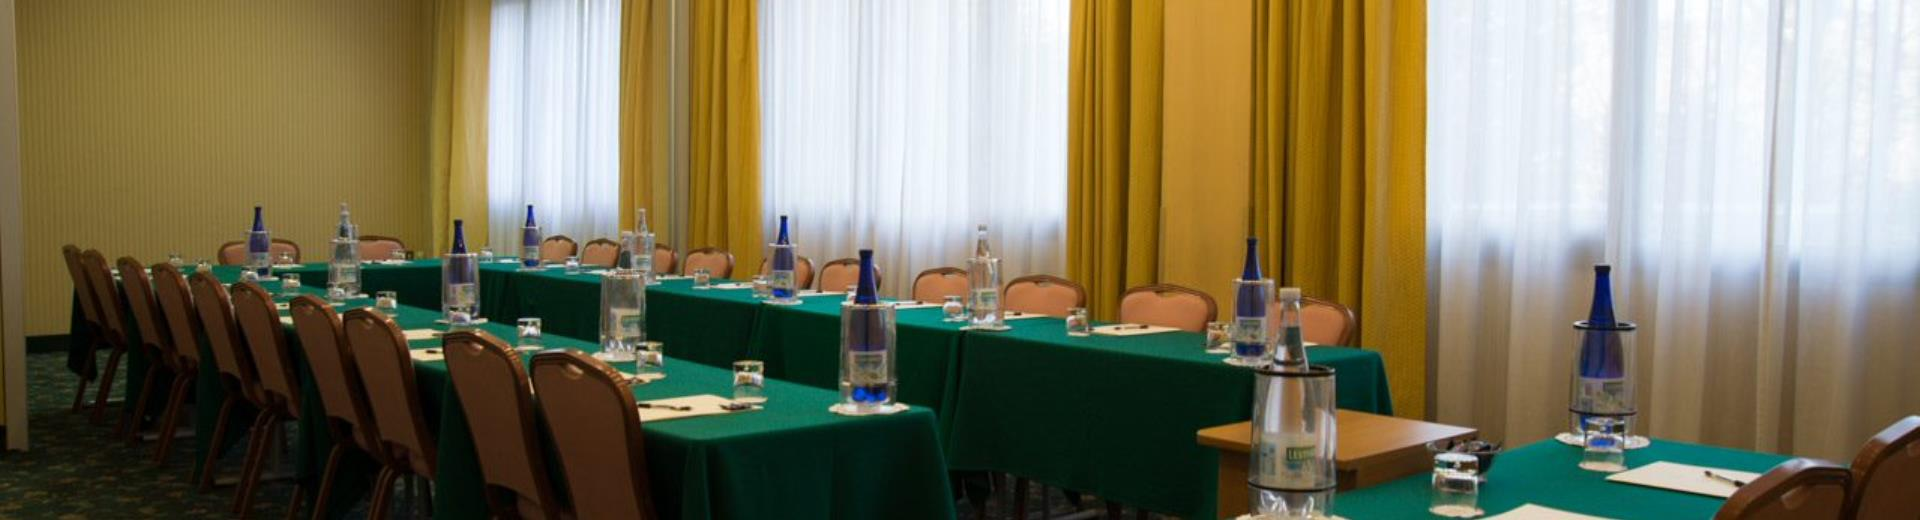 Air Hotel Milano Linate features 6 meeting rooms for up to 130 people: choose the best solution for you and book now!